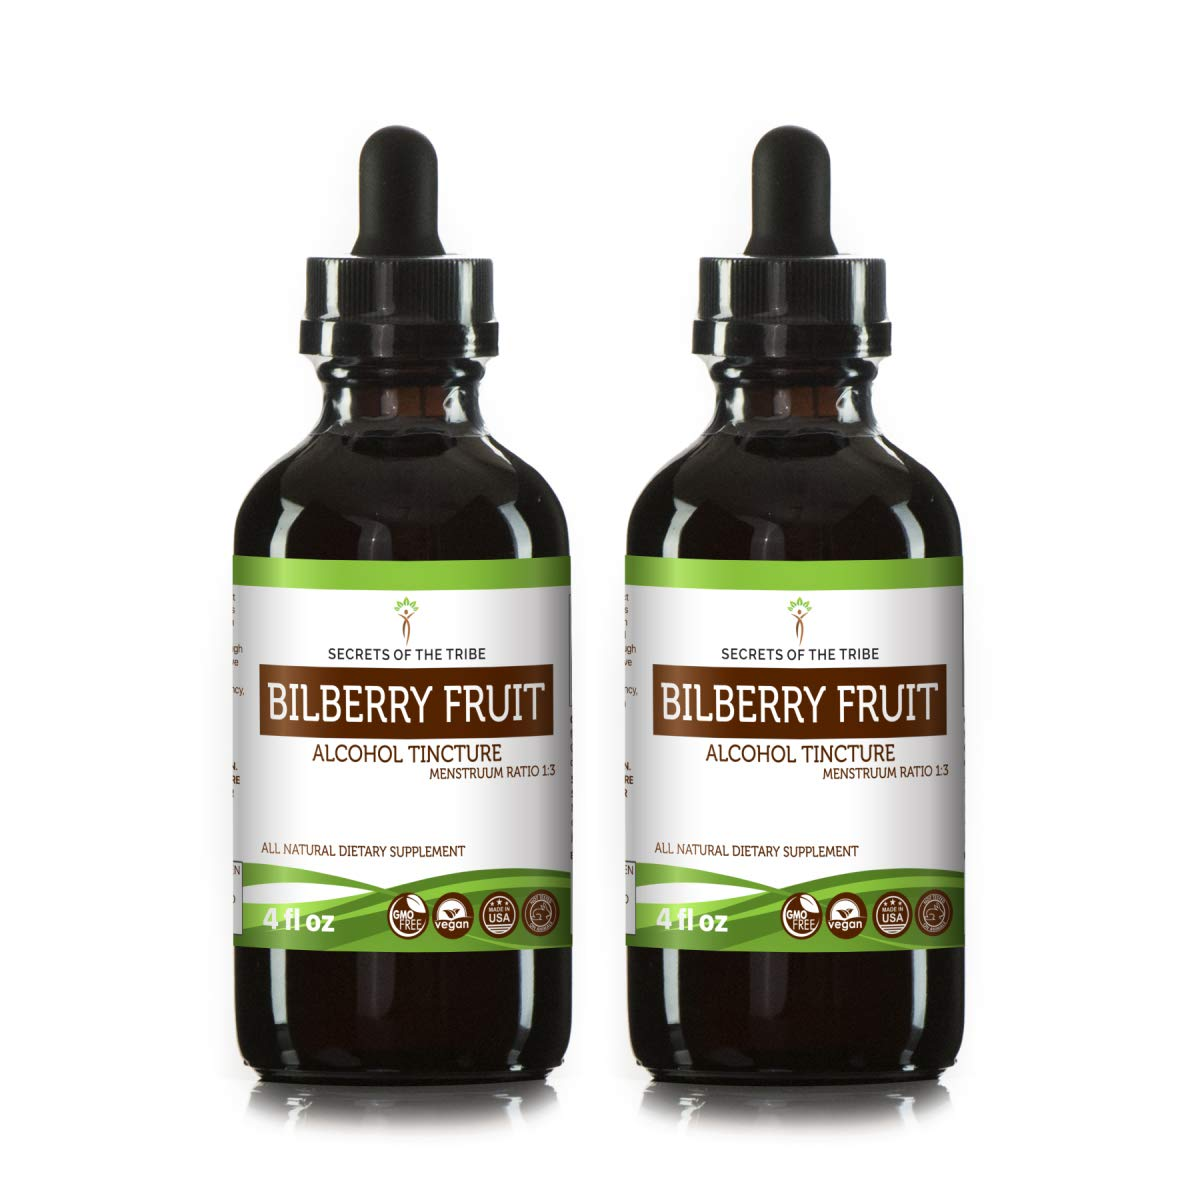 Bilberry Fruit Alcohol Tincture Liquid Extract, Organic Bilberry (Vaccinium Myrtillus) Dried Fruit Tincture Supplement (2x4 fl oz)